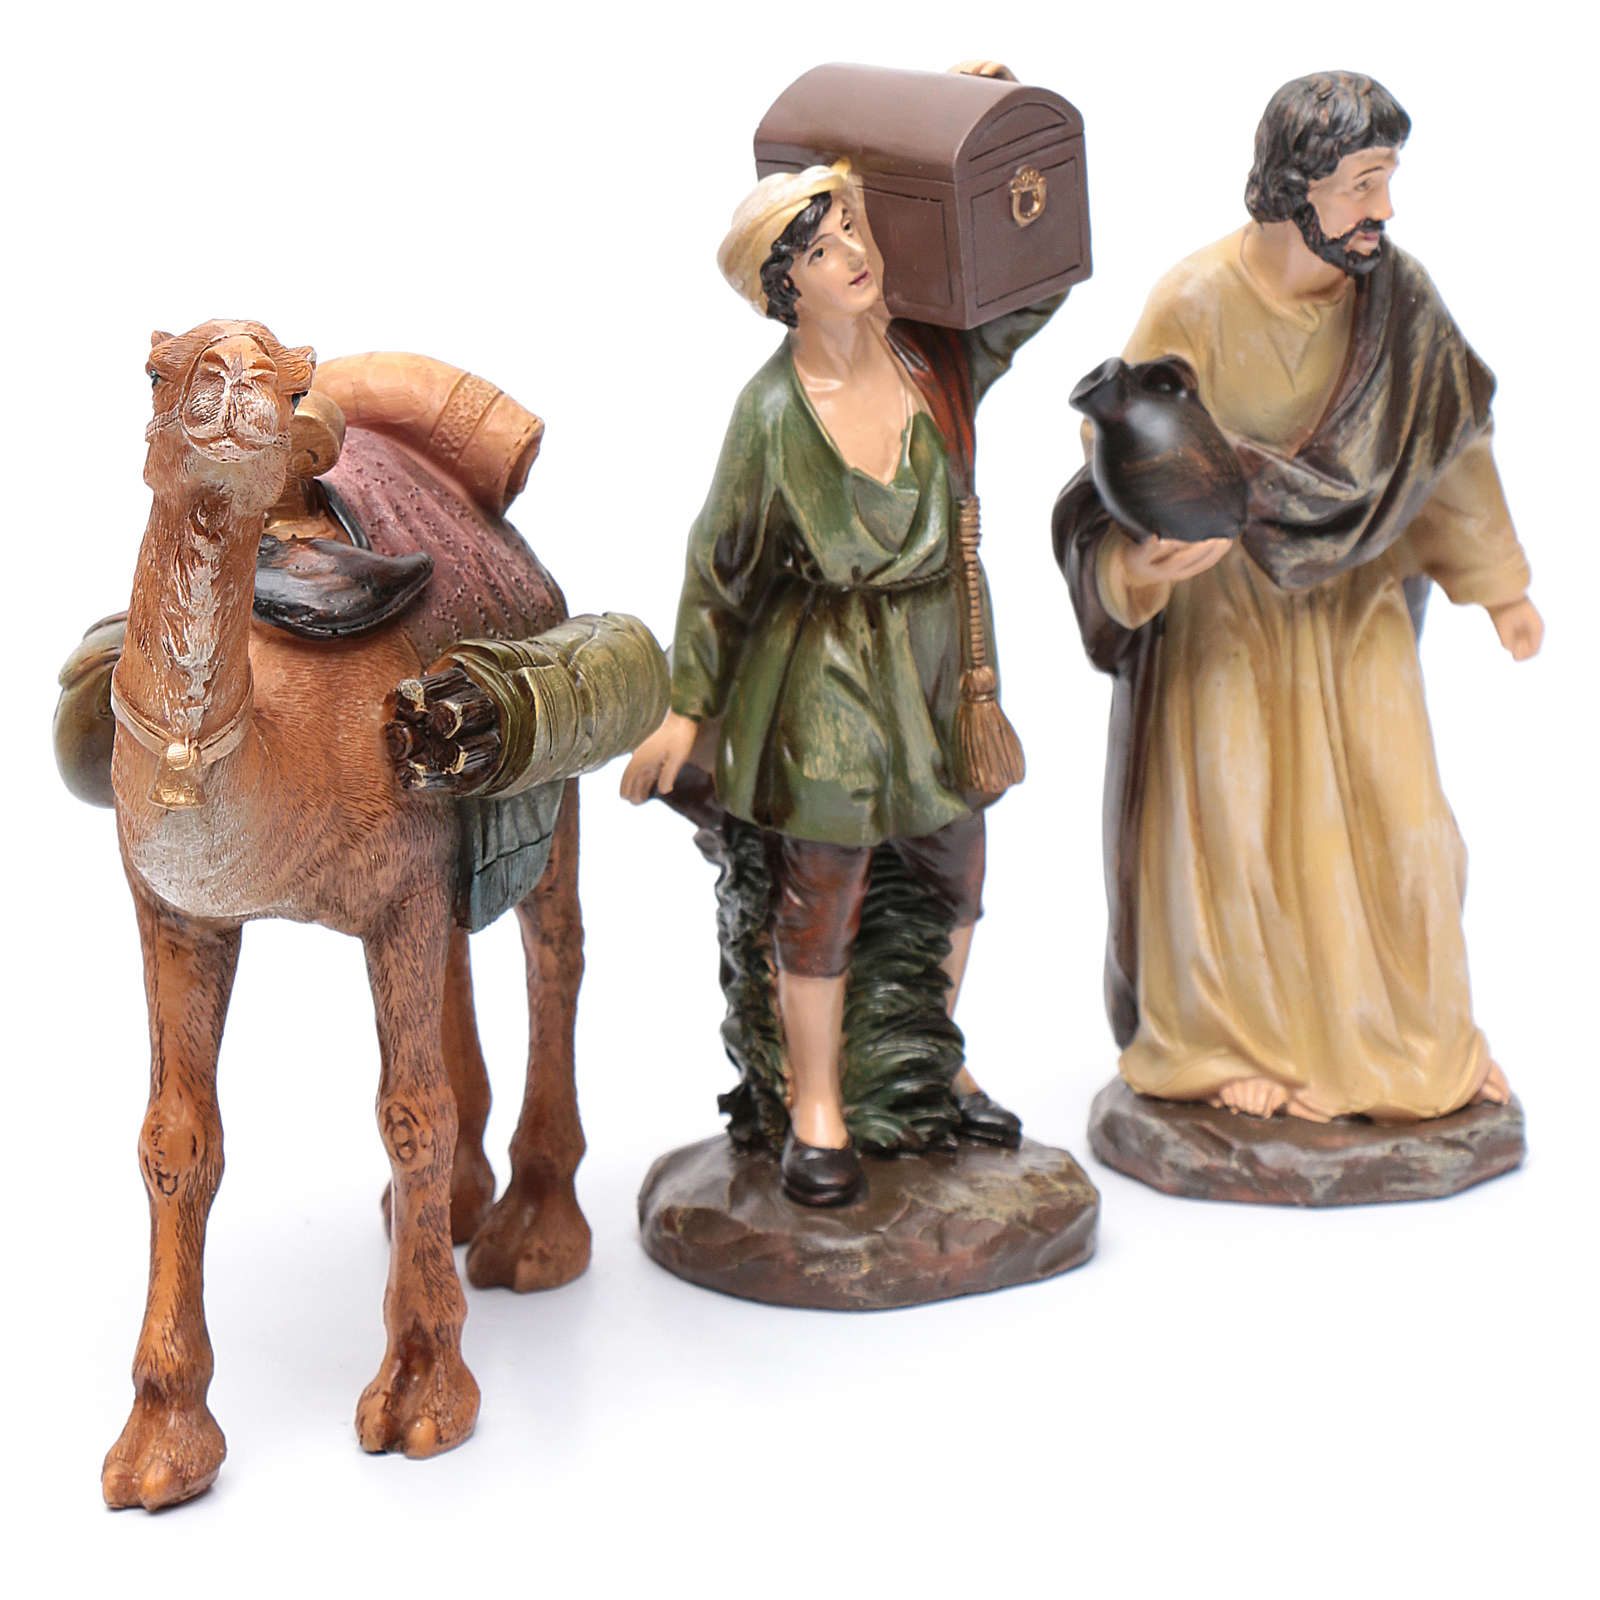 Nativity scene shepherds and camel in resin 20 cm 3 pieces set 3